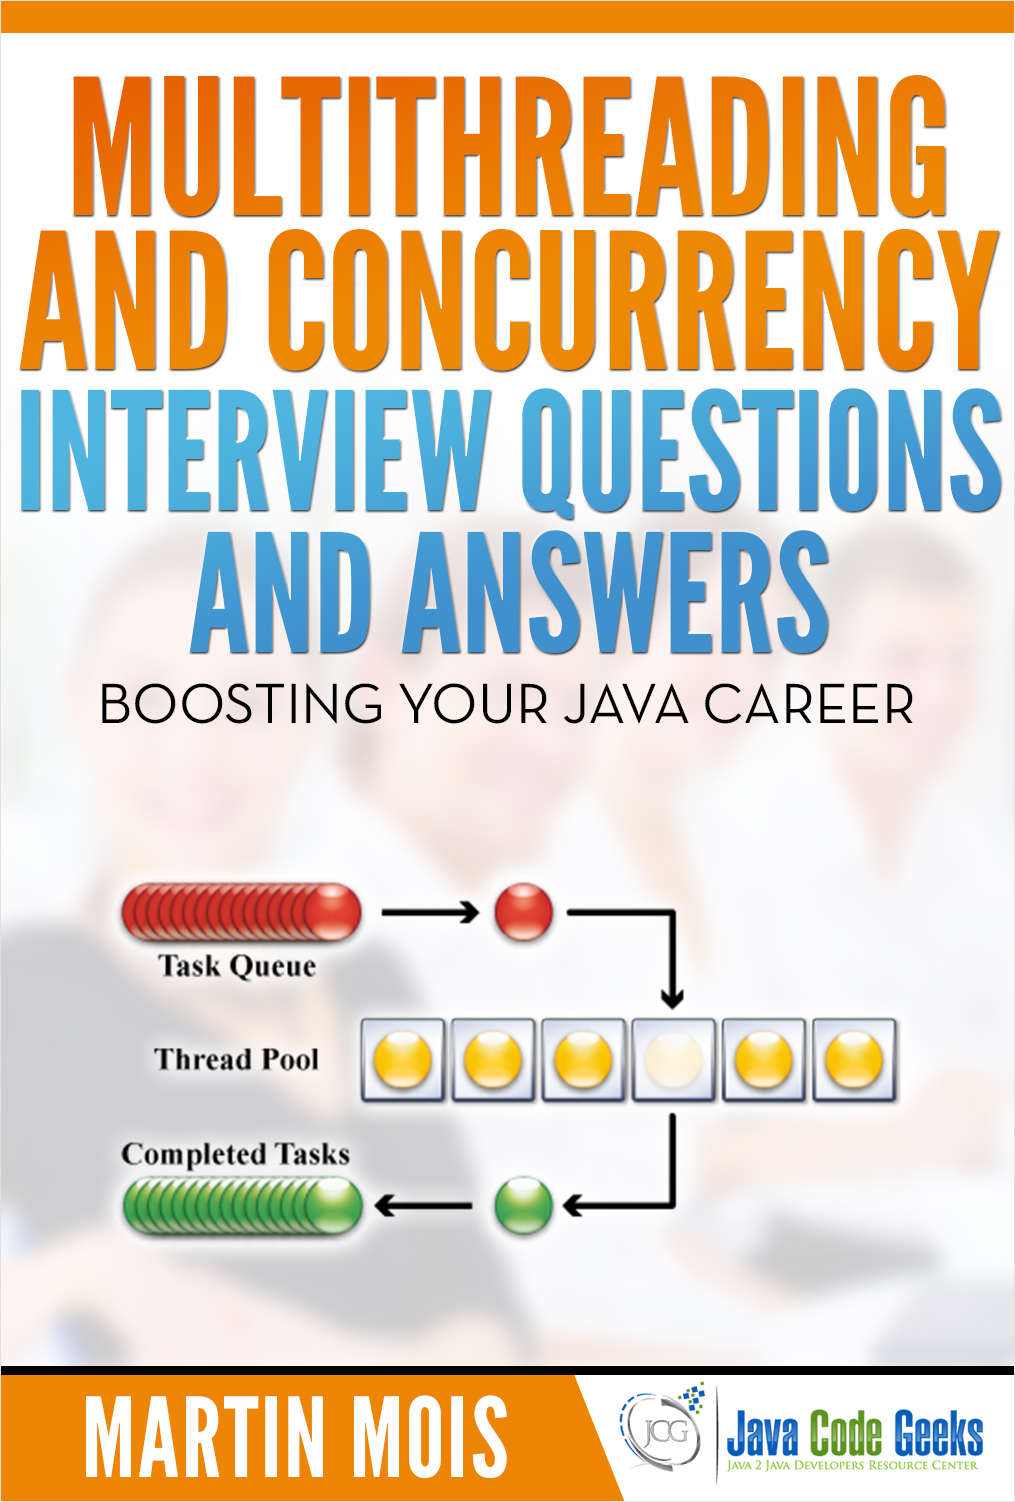 Multithreading and Concurrency Interview Questions and Answers